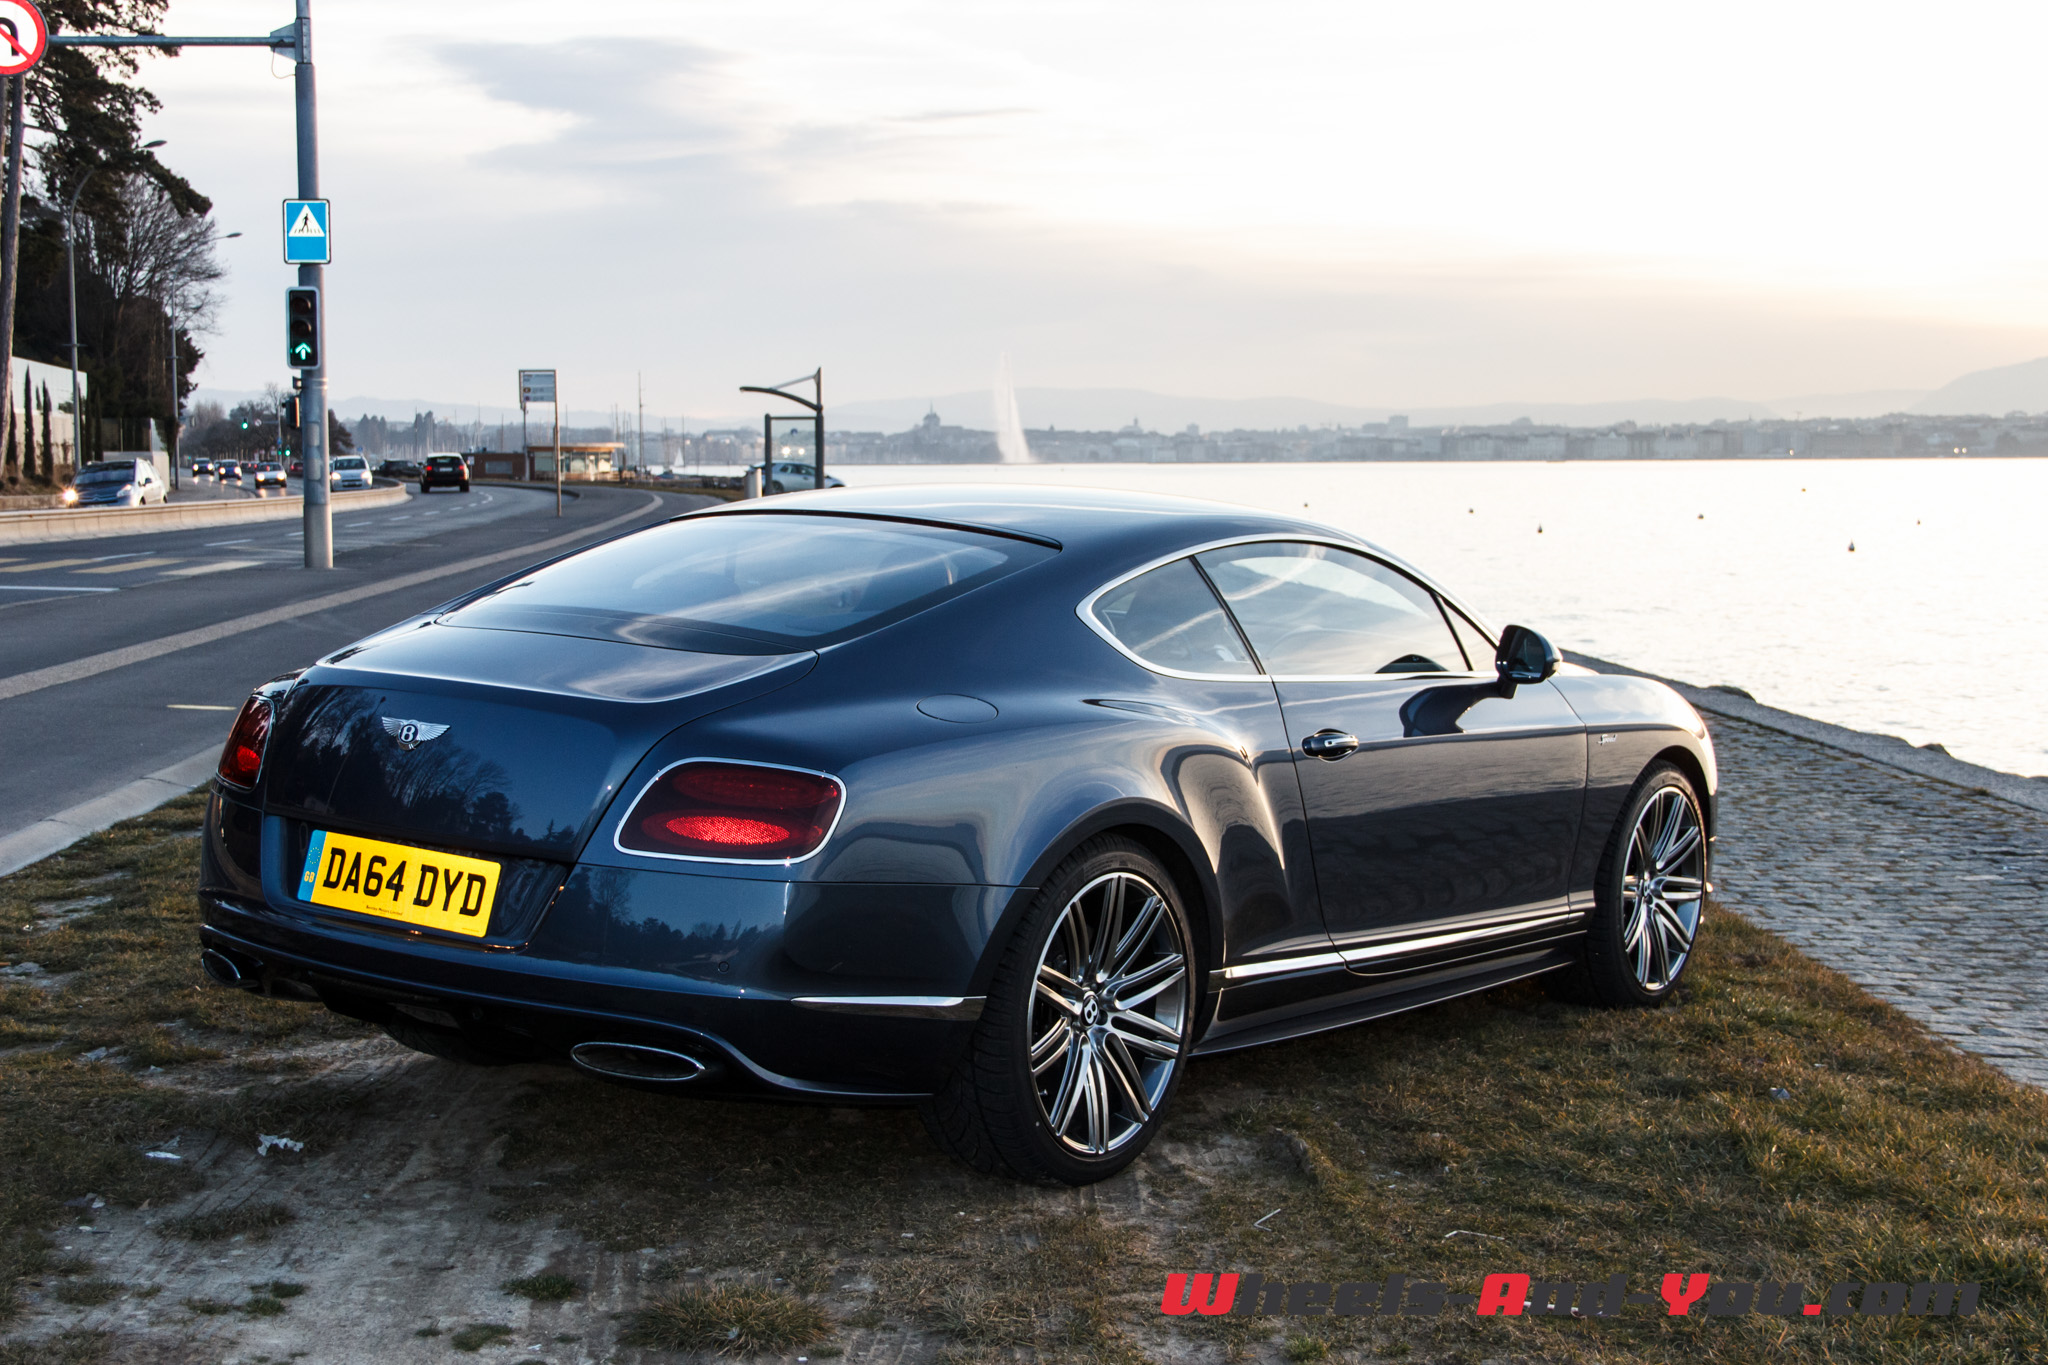 Essai Bentley Continental Gt Speed My2015 Toujours